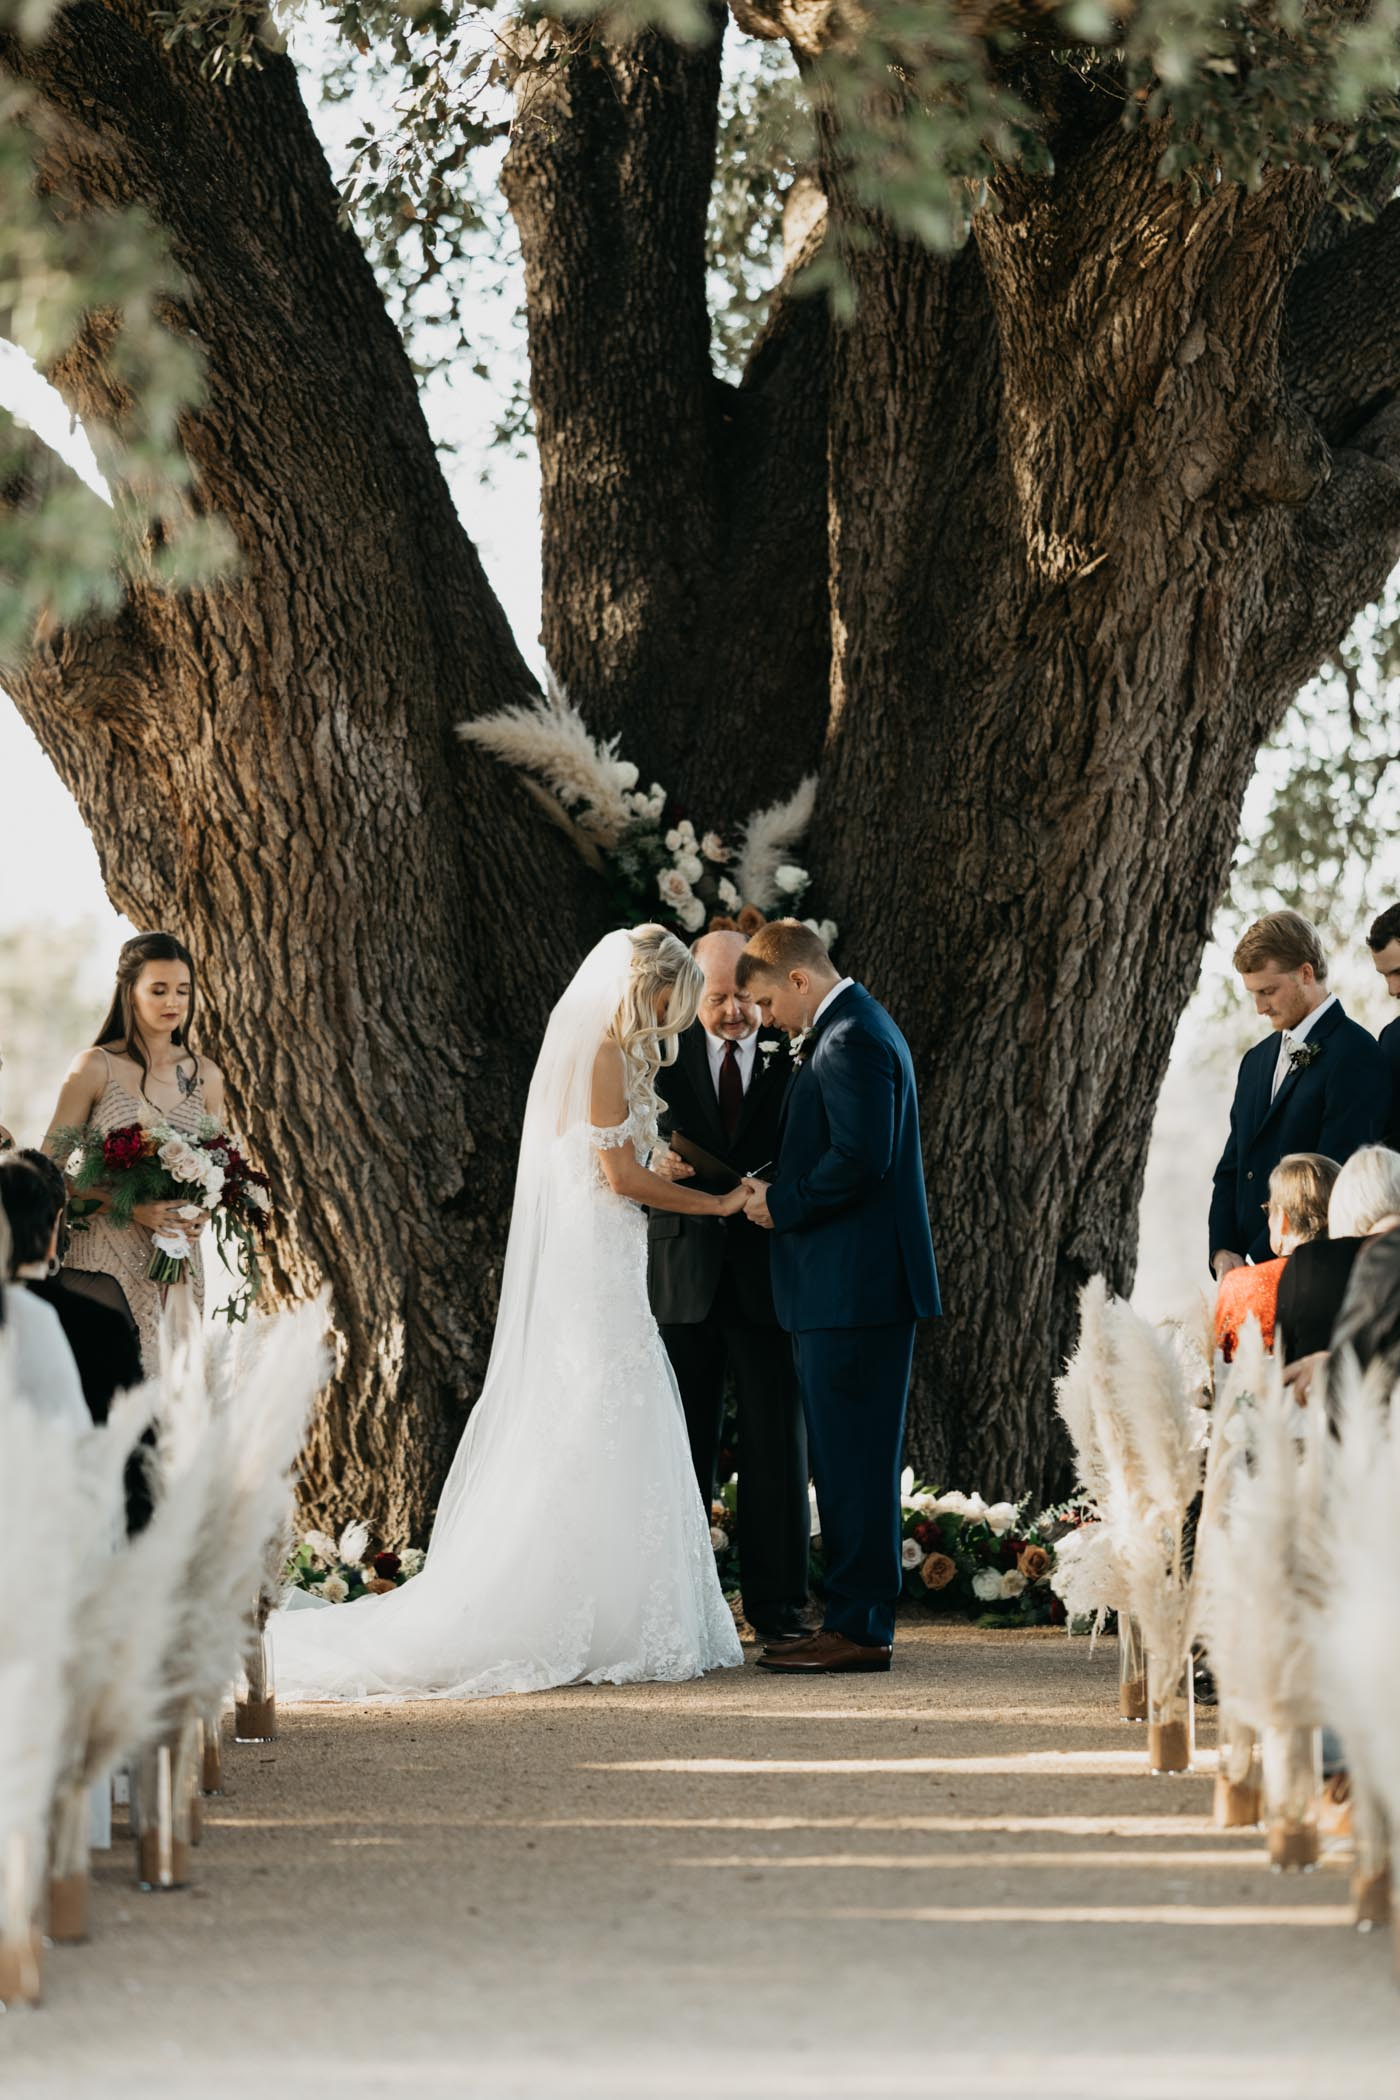 bride and groom holding hands in front of large tree during wedding ceremony